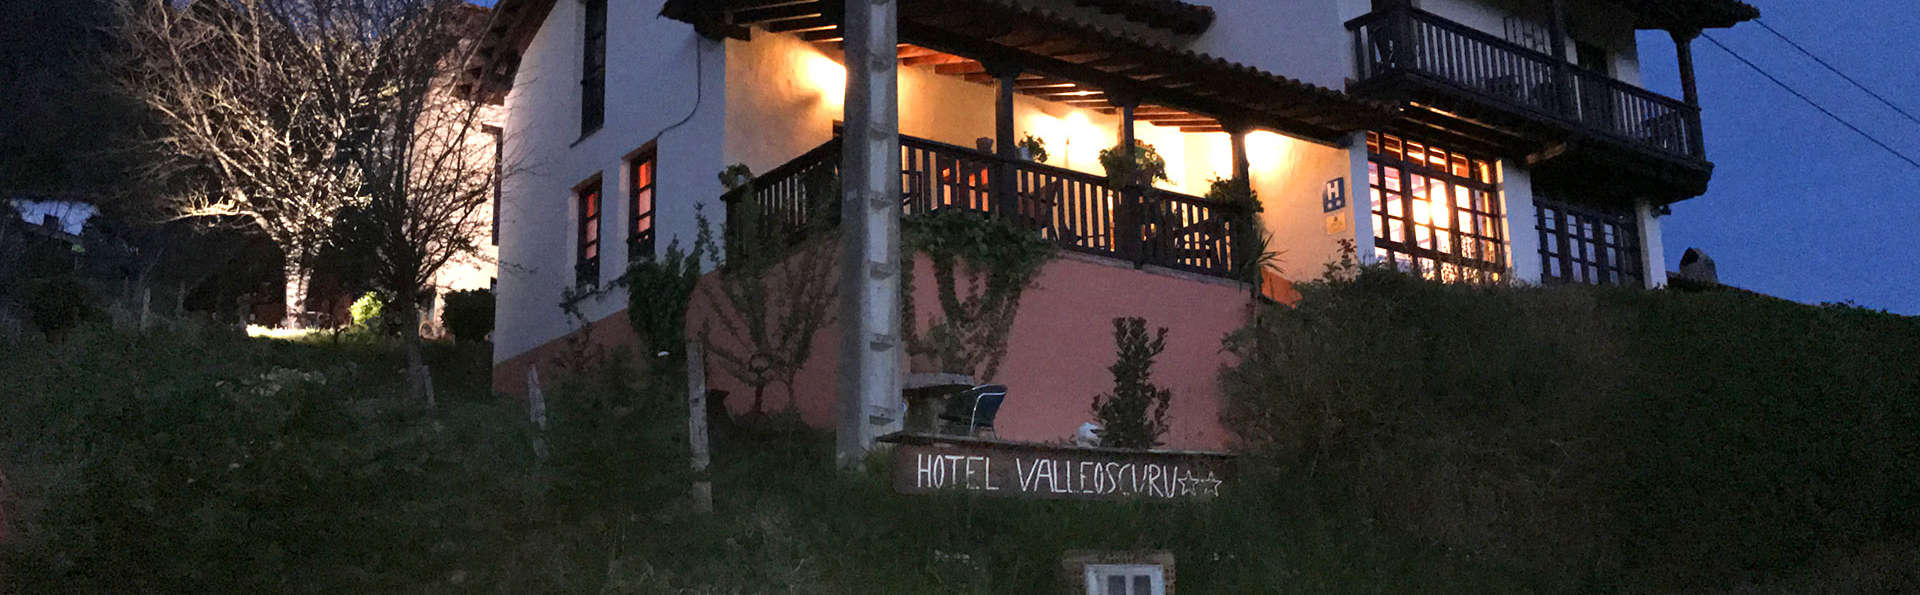 Hotel Rural Valleoscuru - EDIT_NEW_Front.jpg